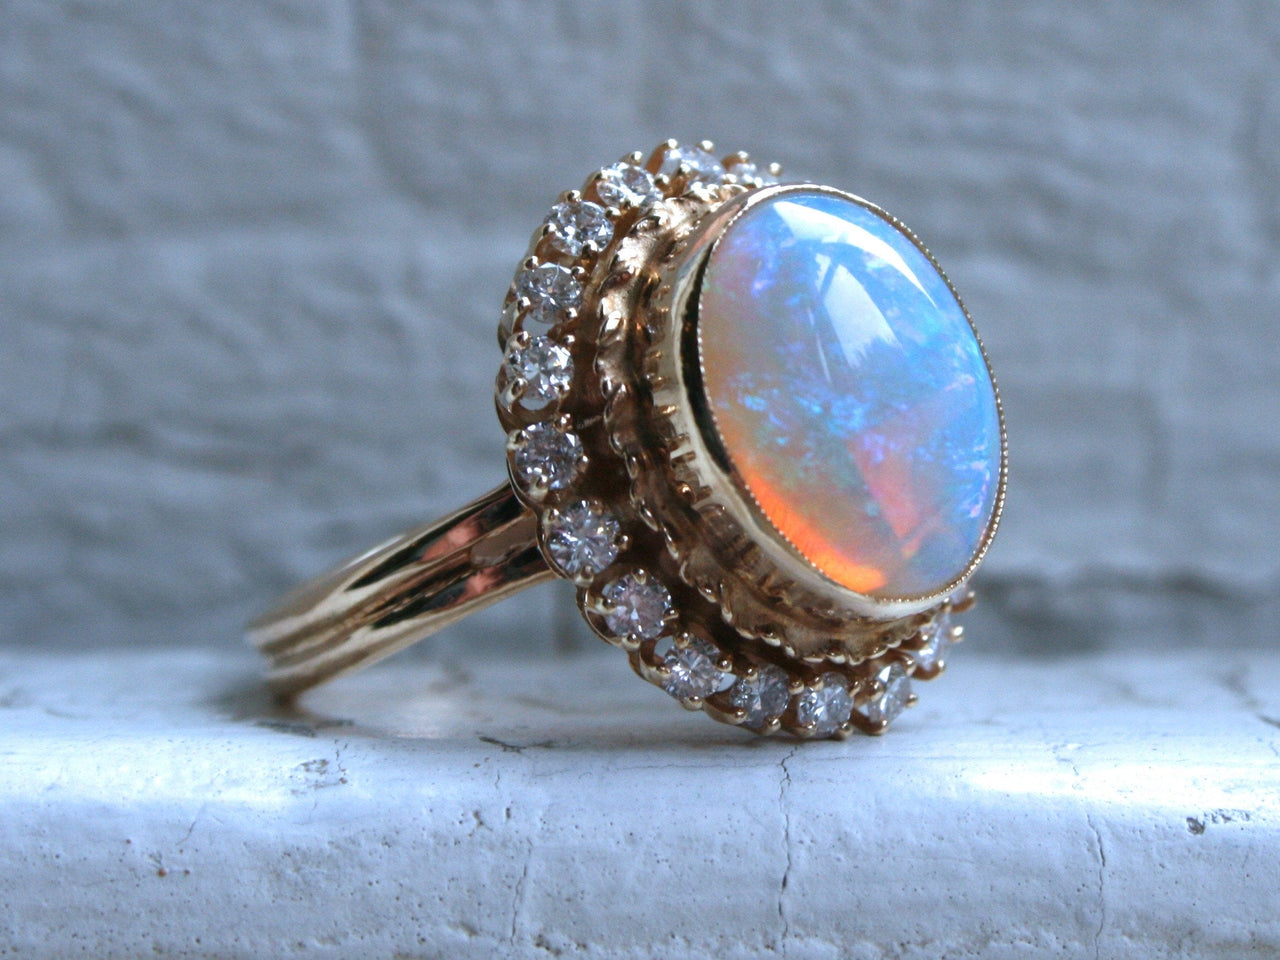 Gorgeous Vintage Opal and Diamond 14K Yellow Gold Ring Engagement Ring - 2.72ct.